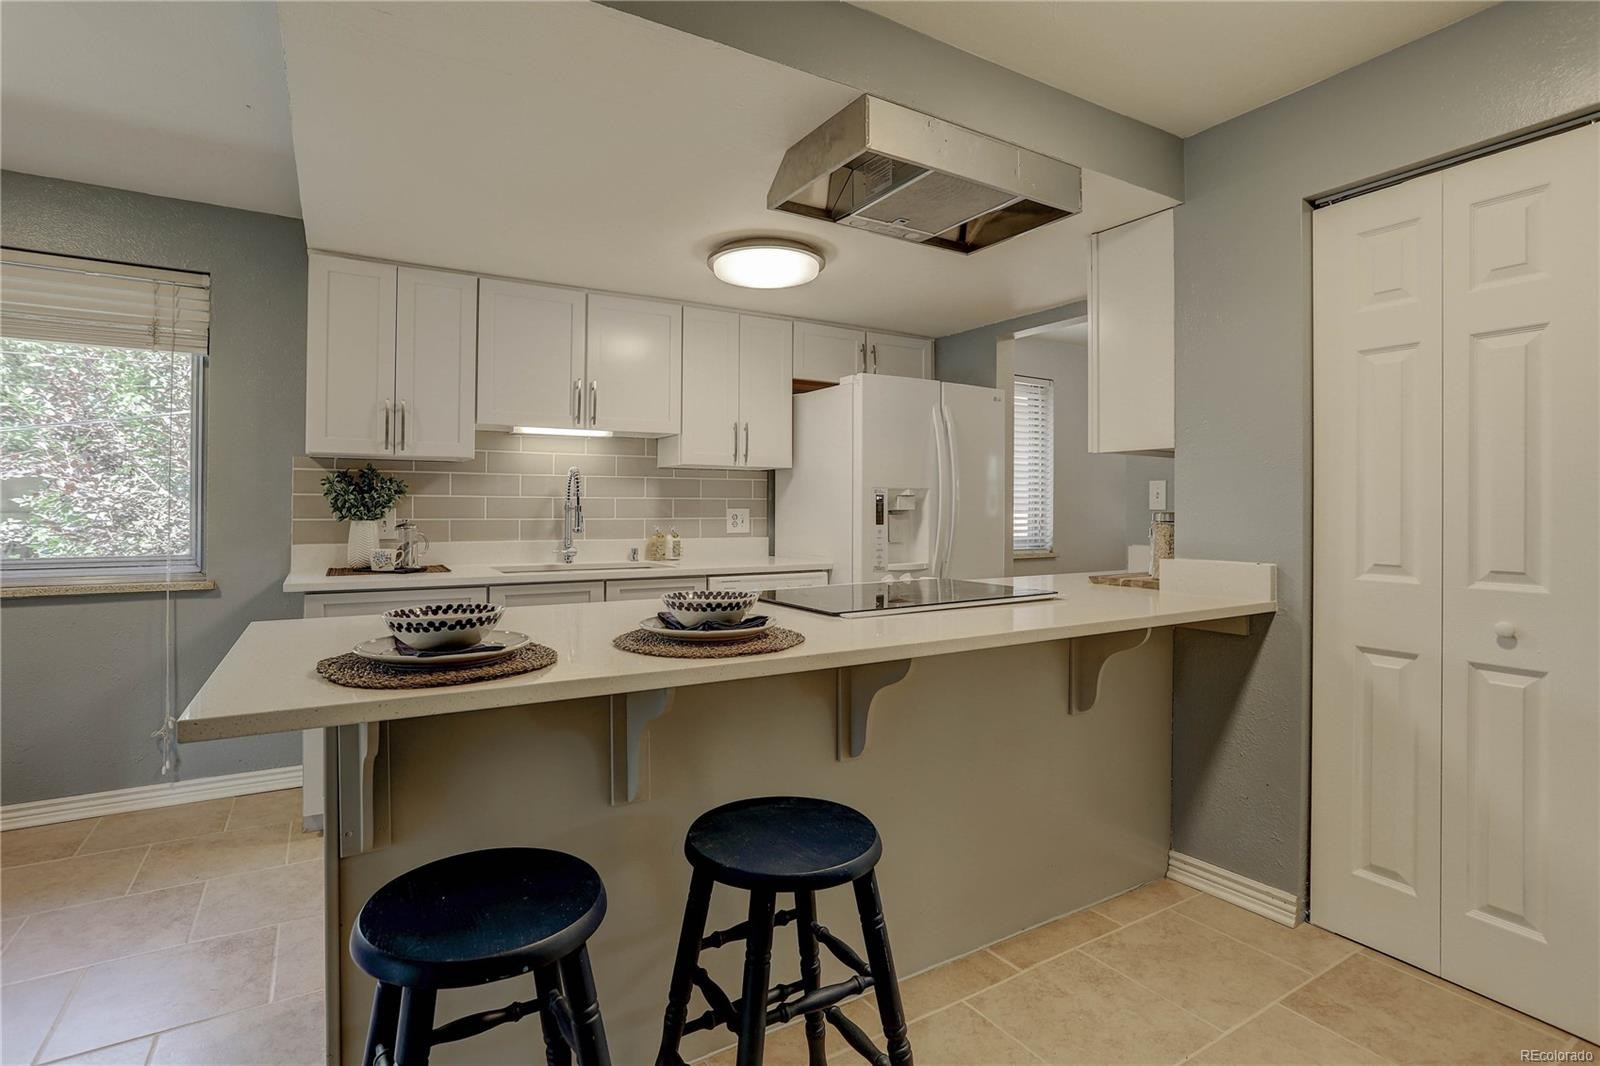 MLS# 2968148 - 6 - 2931 S Downing Street, Englewood, CO 80113